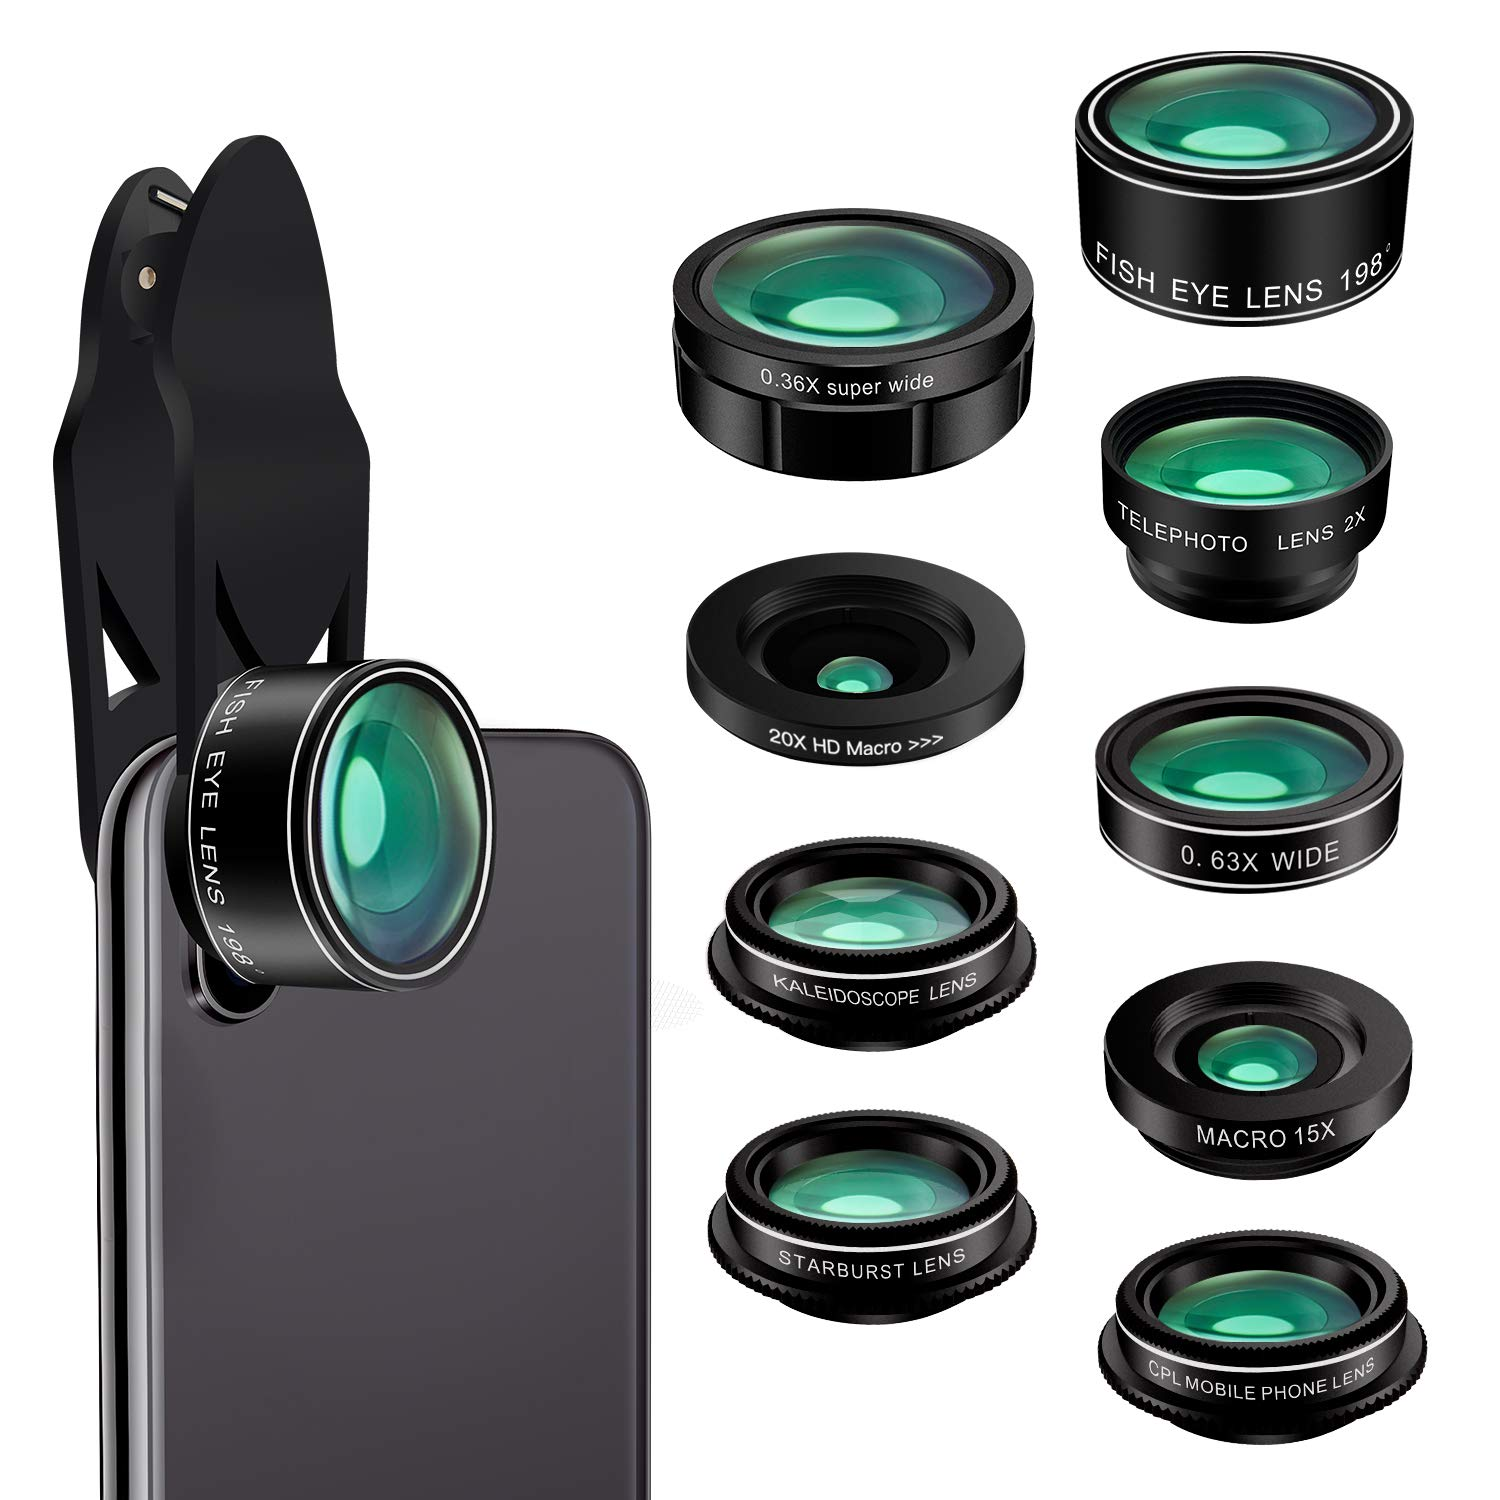 Cell Phone Camera Lens, Kaiess 9 in 1 Wide Angle Lens,Macro Lens,Fisheye Lens,Telephoto Lens,CPL Lens, Kaleidoscope and Starburst Lens Compatible with iPhone,Samsung,Most Andriod Phones by Kaiess